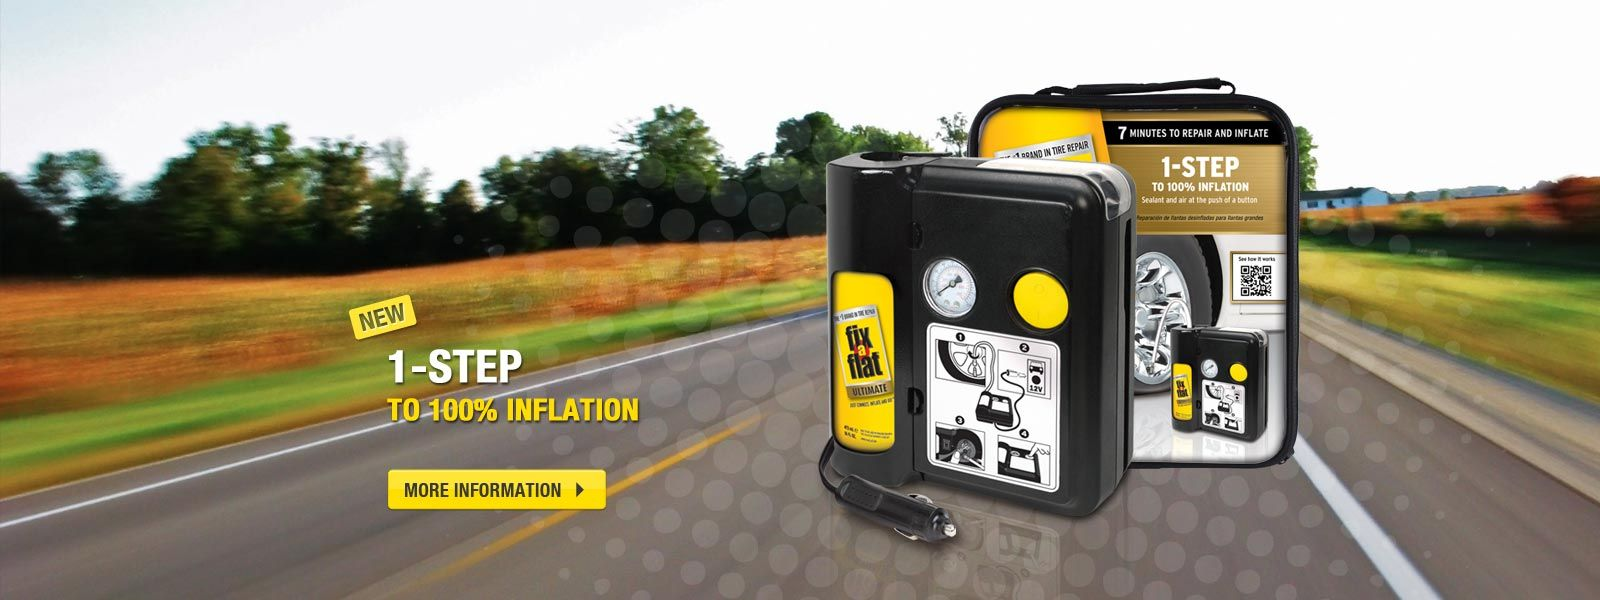 Fixaflat just connect inflate and go tire repair